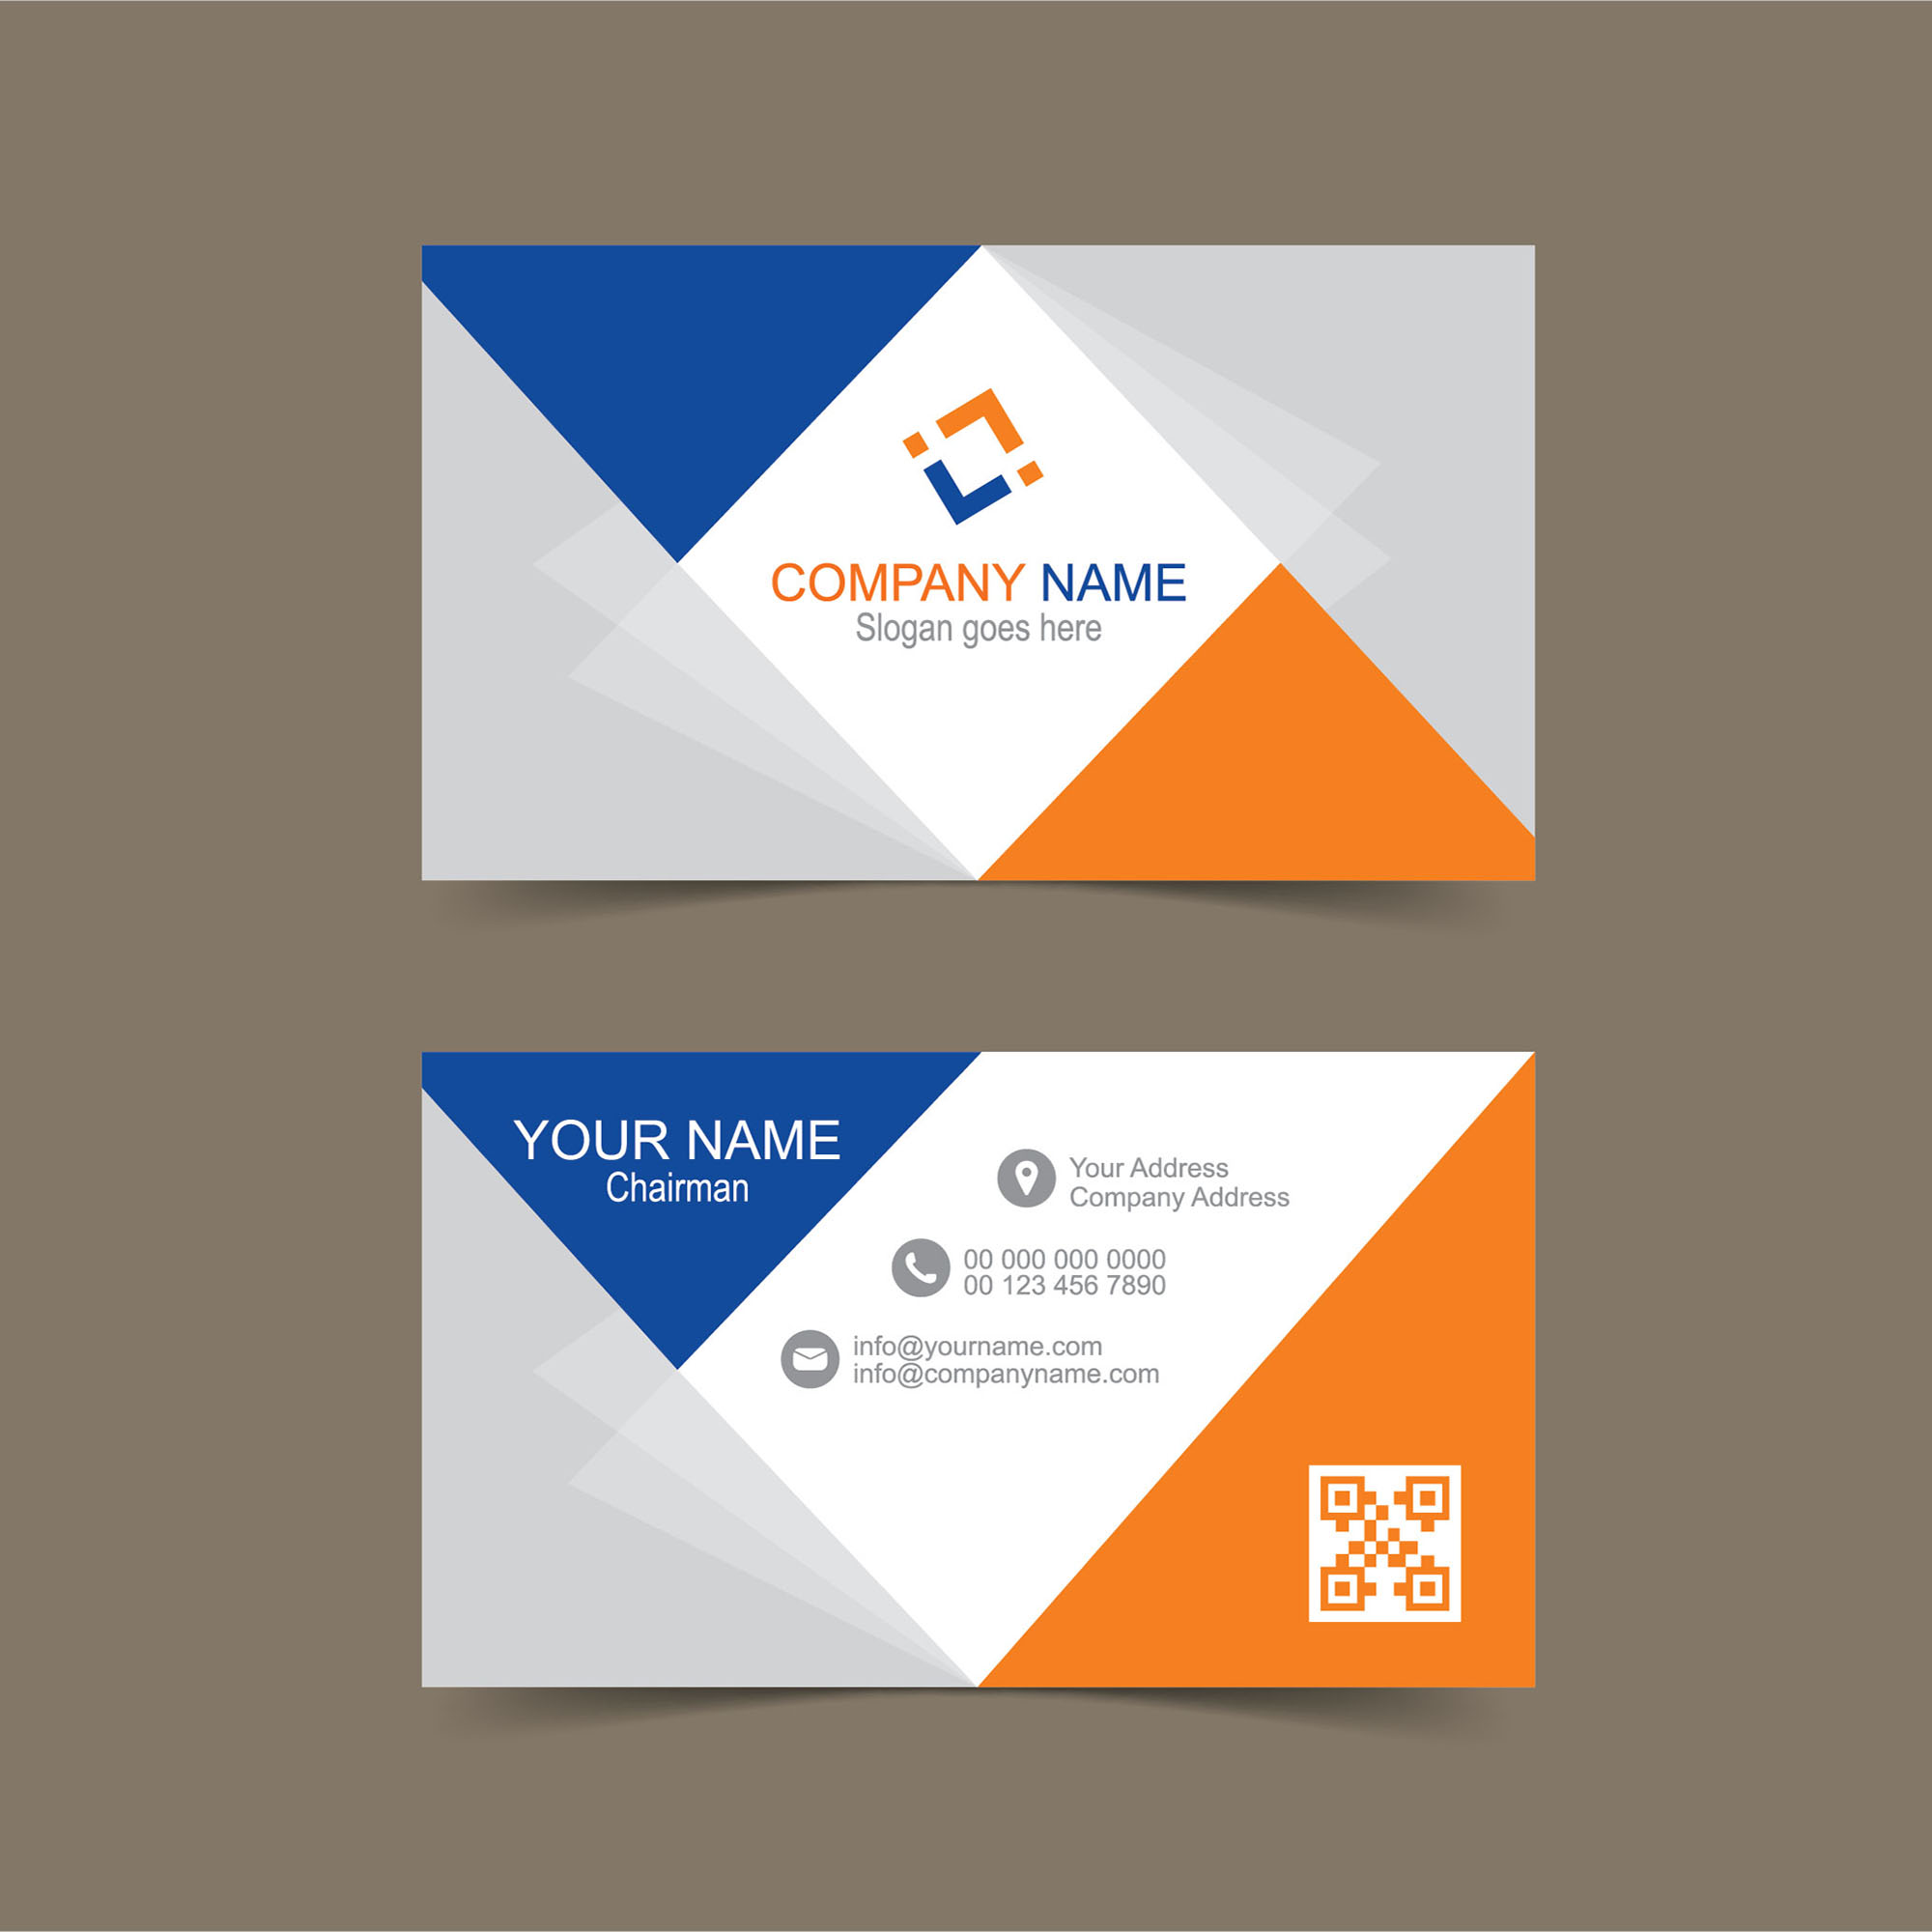 Free business card template for illustrator wisxi business card business cards business card design business card template design templates accmission Gallery